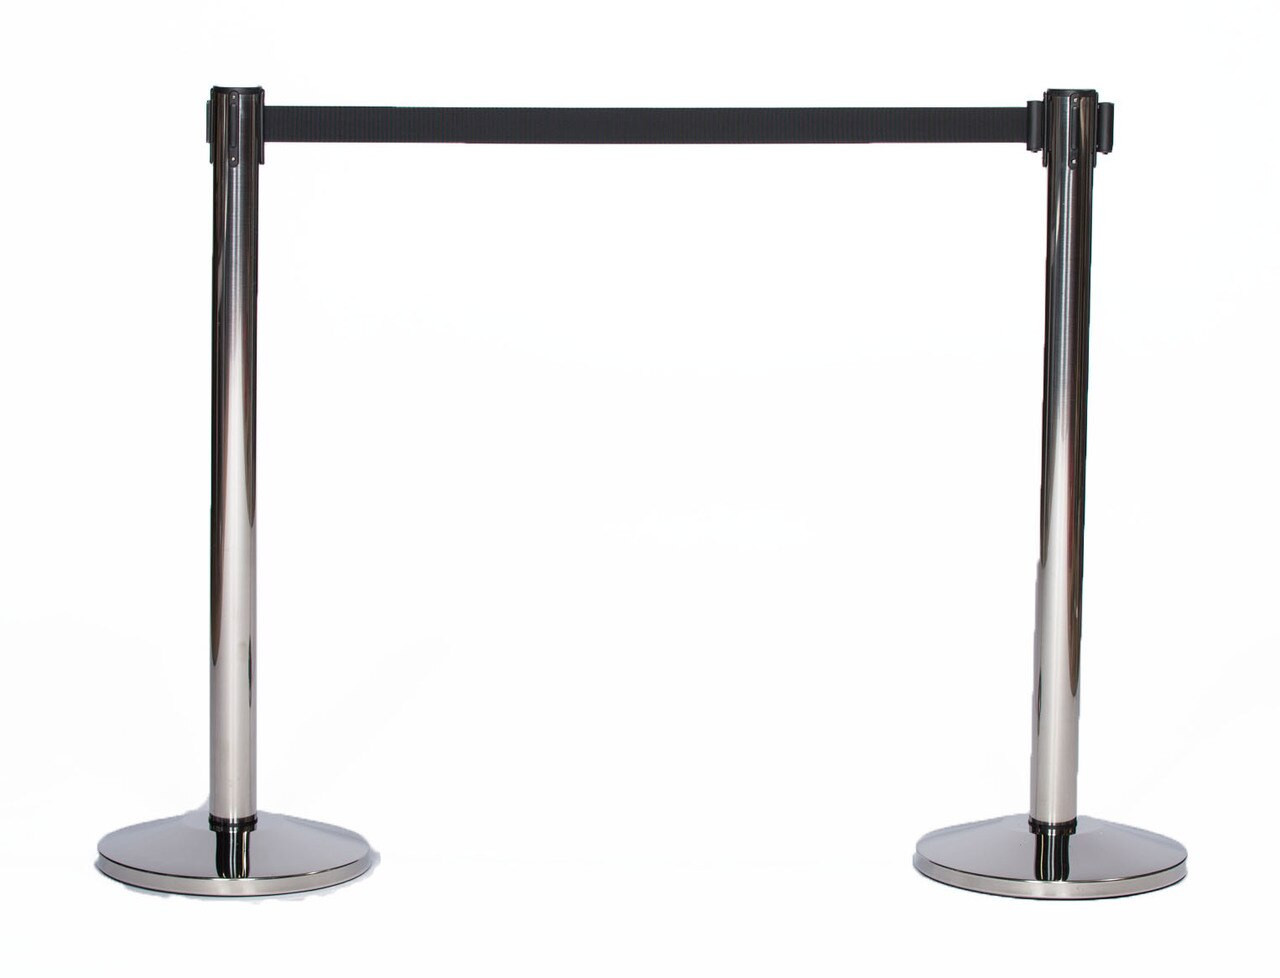 Compatible with Top Rated Chrome/ Stainless Steel Retractable Belt Stanchion or Safety Barriers